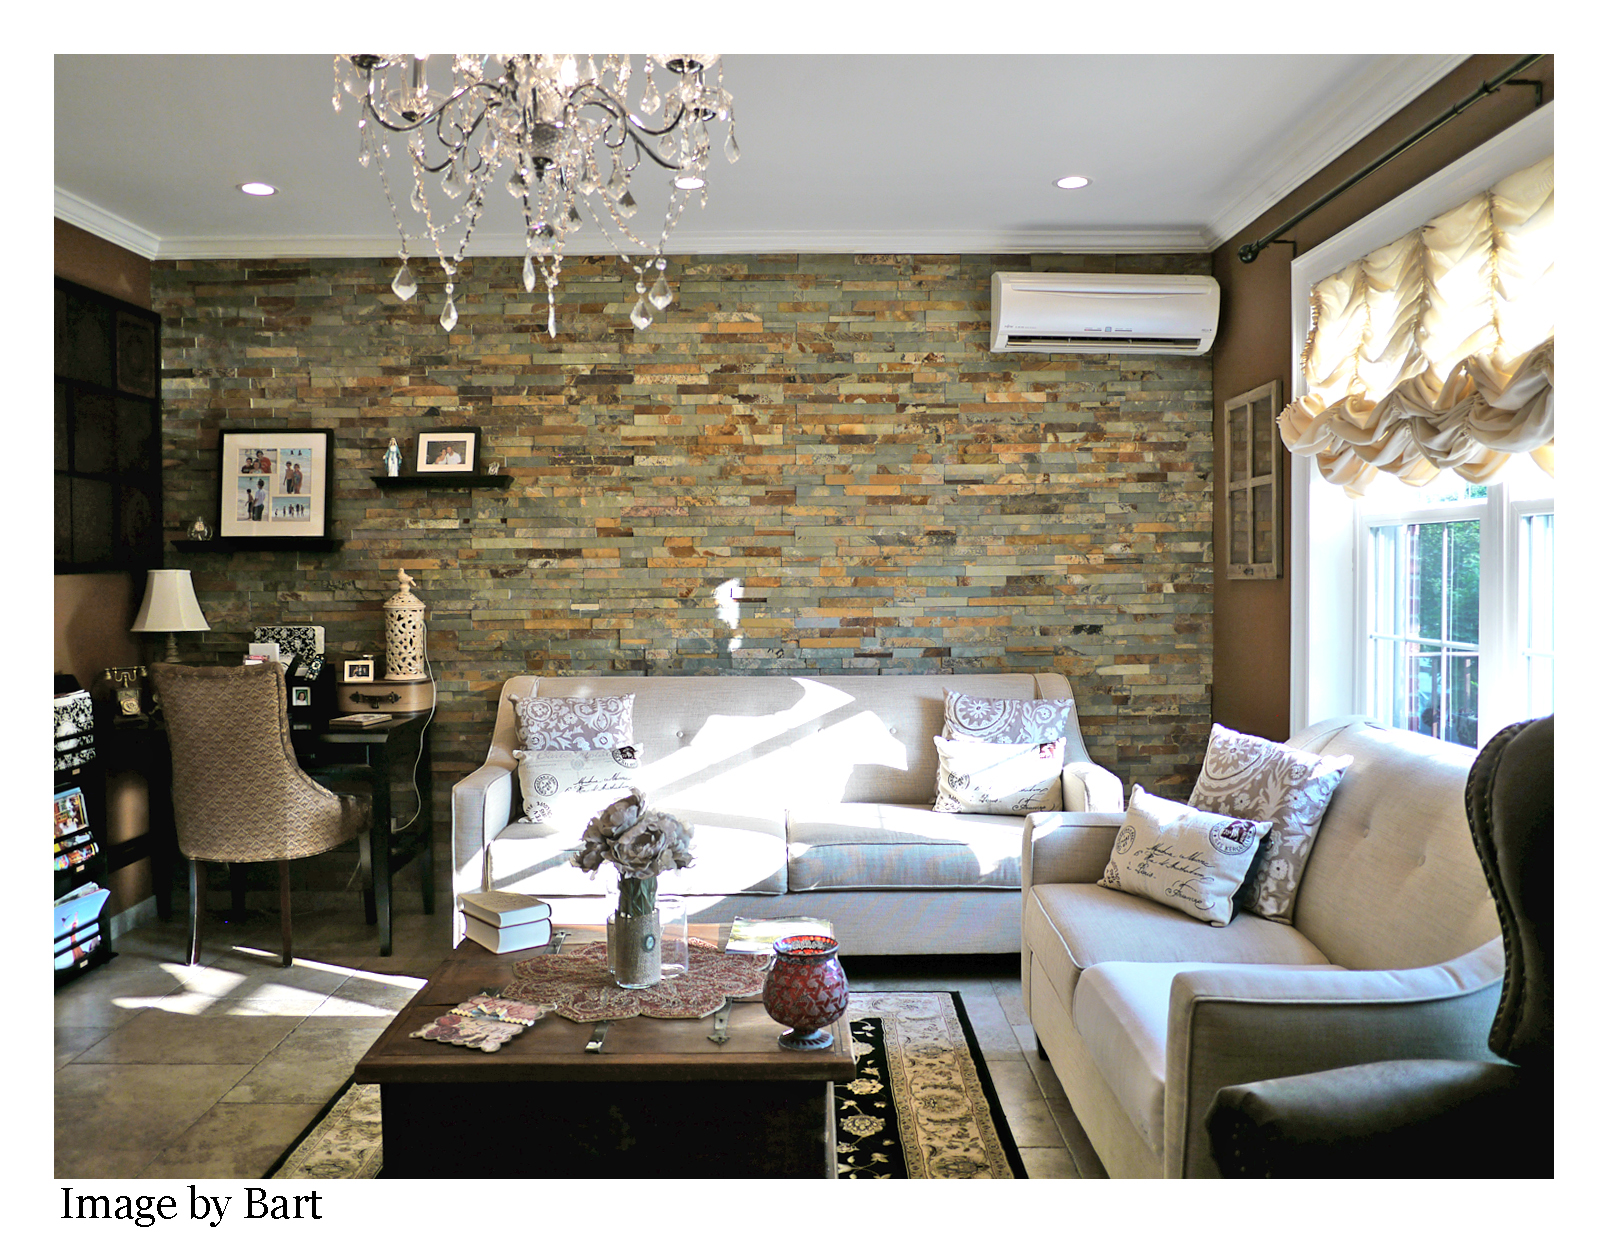 singles in middle village Search middle village real estate property listings to find homes for sale in middle village, ny browse houses for sale in middle village today.